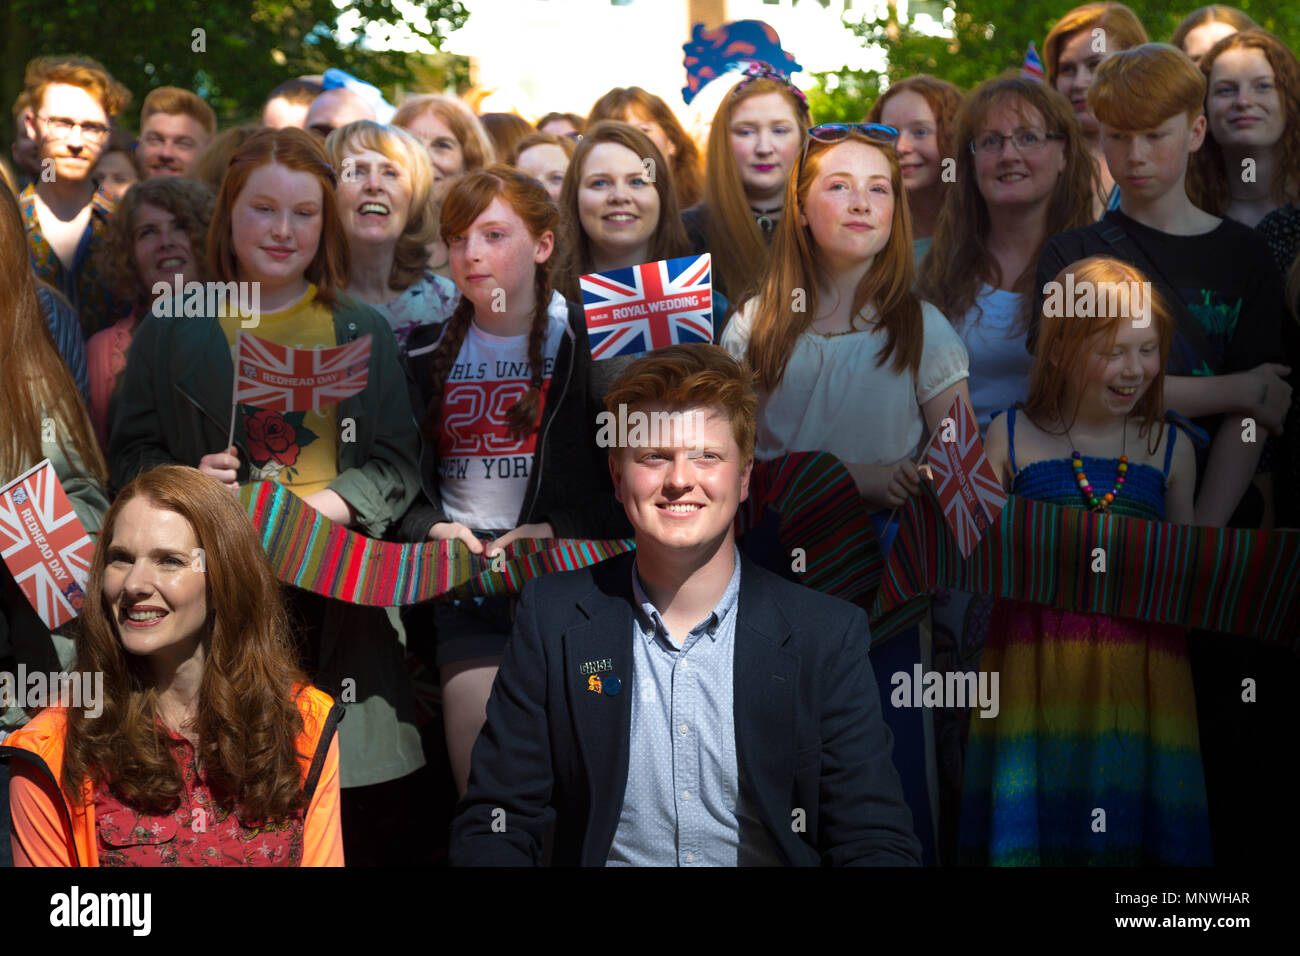 London, UK. 19th May 2018. Redhead Day UK in north London. The annual event sees hundreds of 'gingers' from around the world join in celebration of red hair. Credit: Guy Corbishley/Alamy Live News - Stock Image